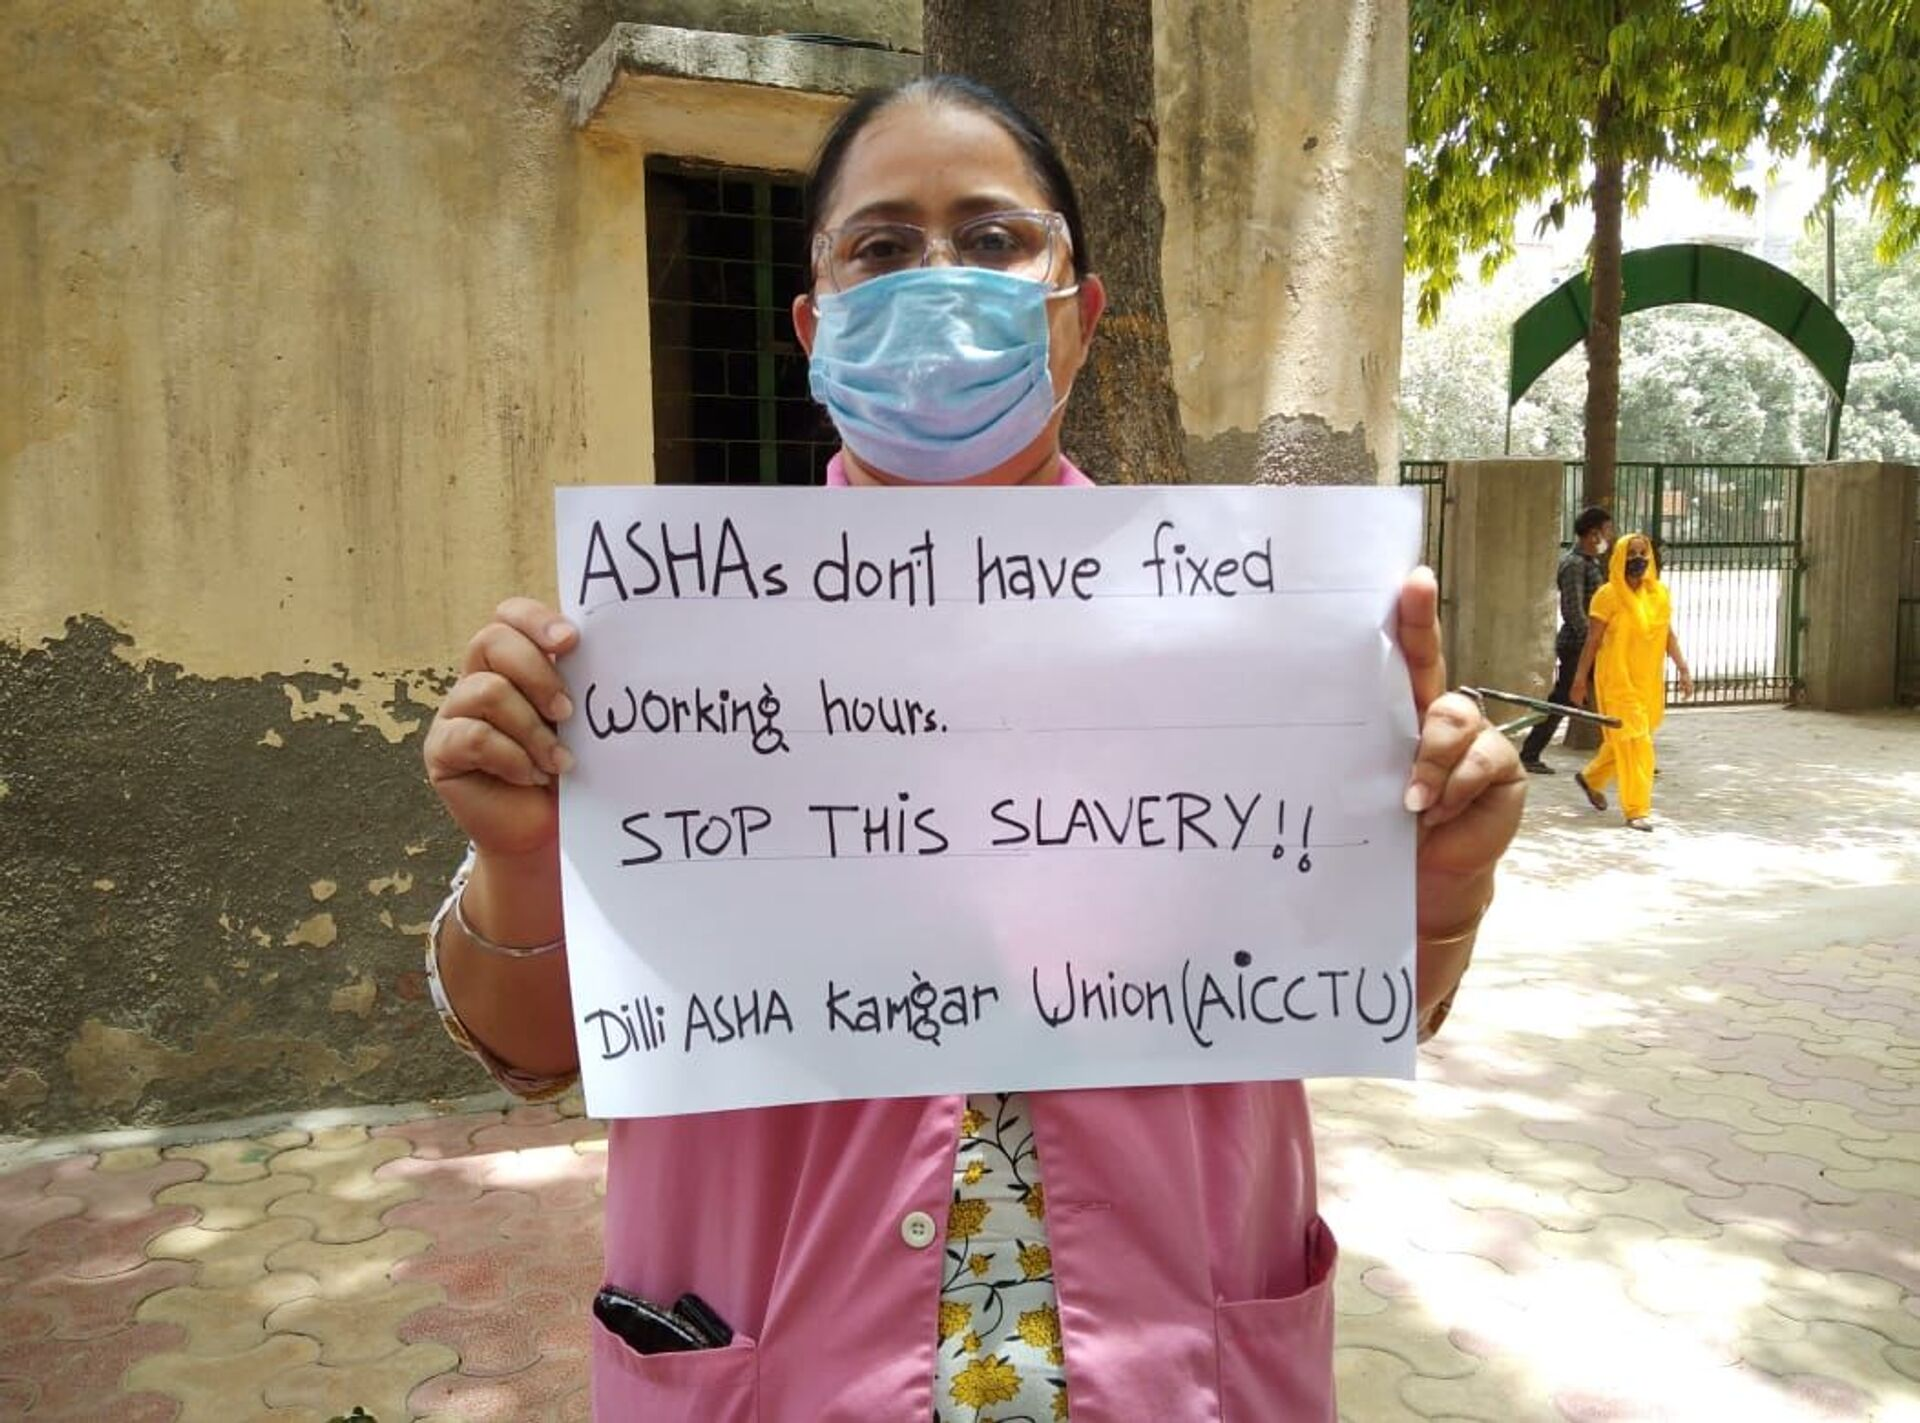 An ASHA worker holds a banner, ASHAs don't have fixed working hours. Stop this slavery! - Sputnik International, 1920, 07.09.2021